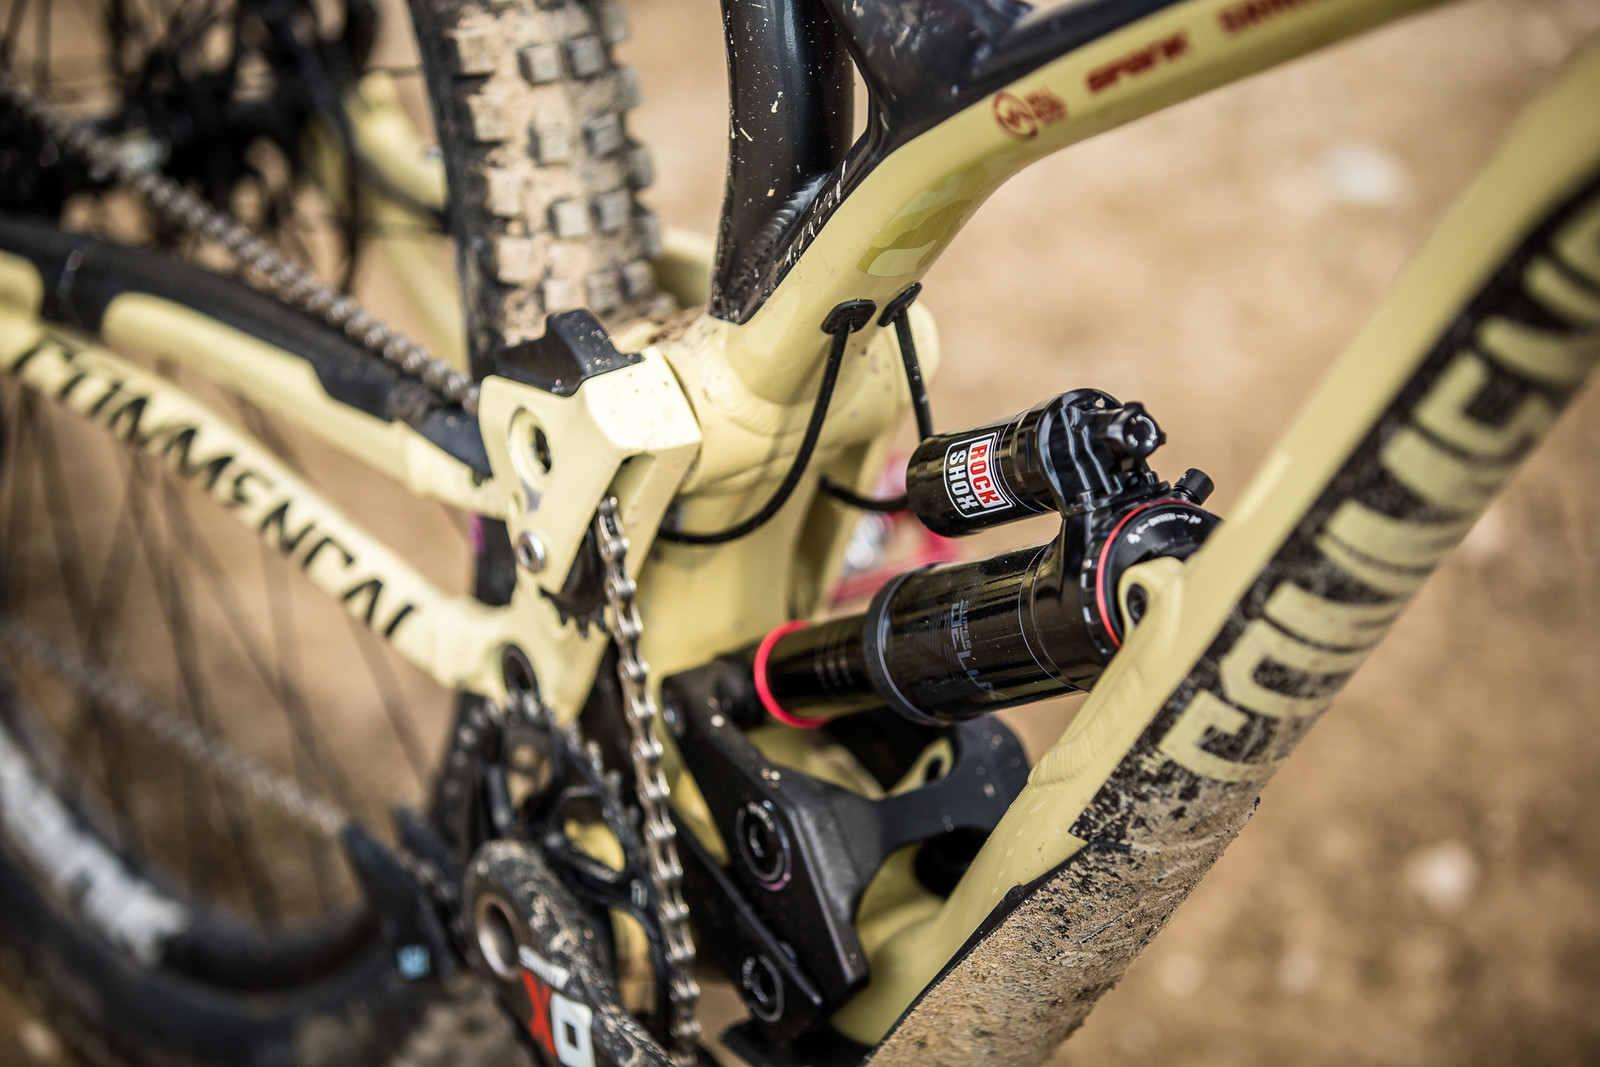 RockShox SuperDeluxe - WINNING BIKE - Amaury Pierron's Commencal Supreme DH 29 - Mountain Biking Pictures - Vital MTB